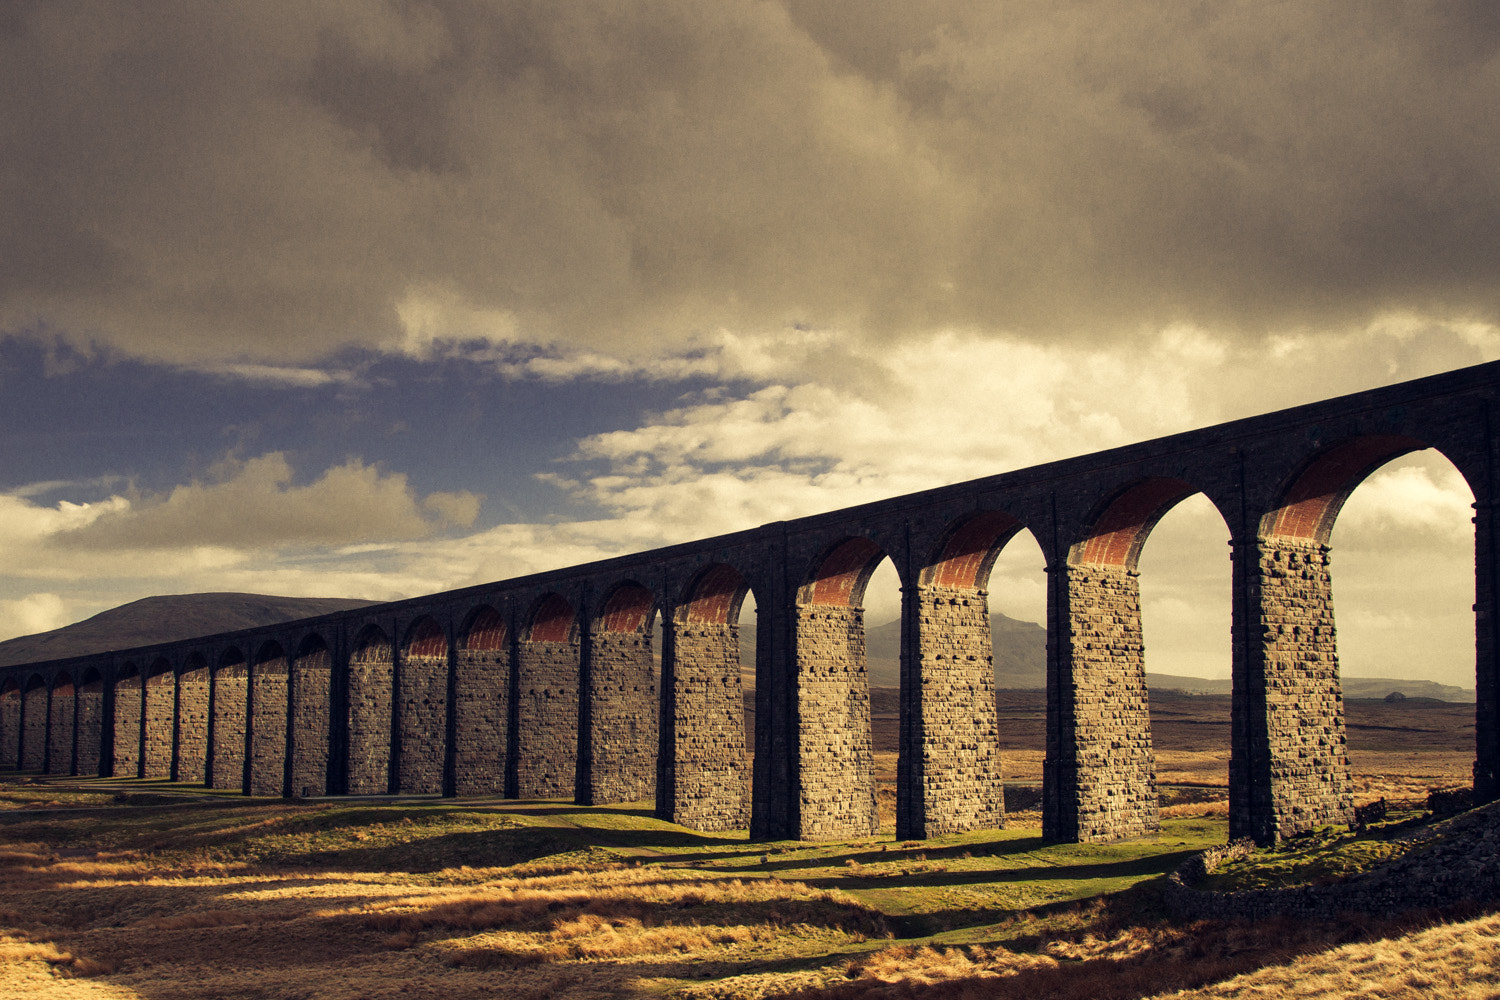 Photograph Ribblehead's Golden Viaduct by Chris Dale on 500px